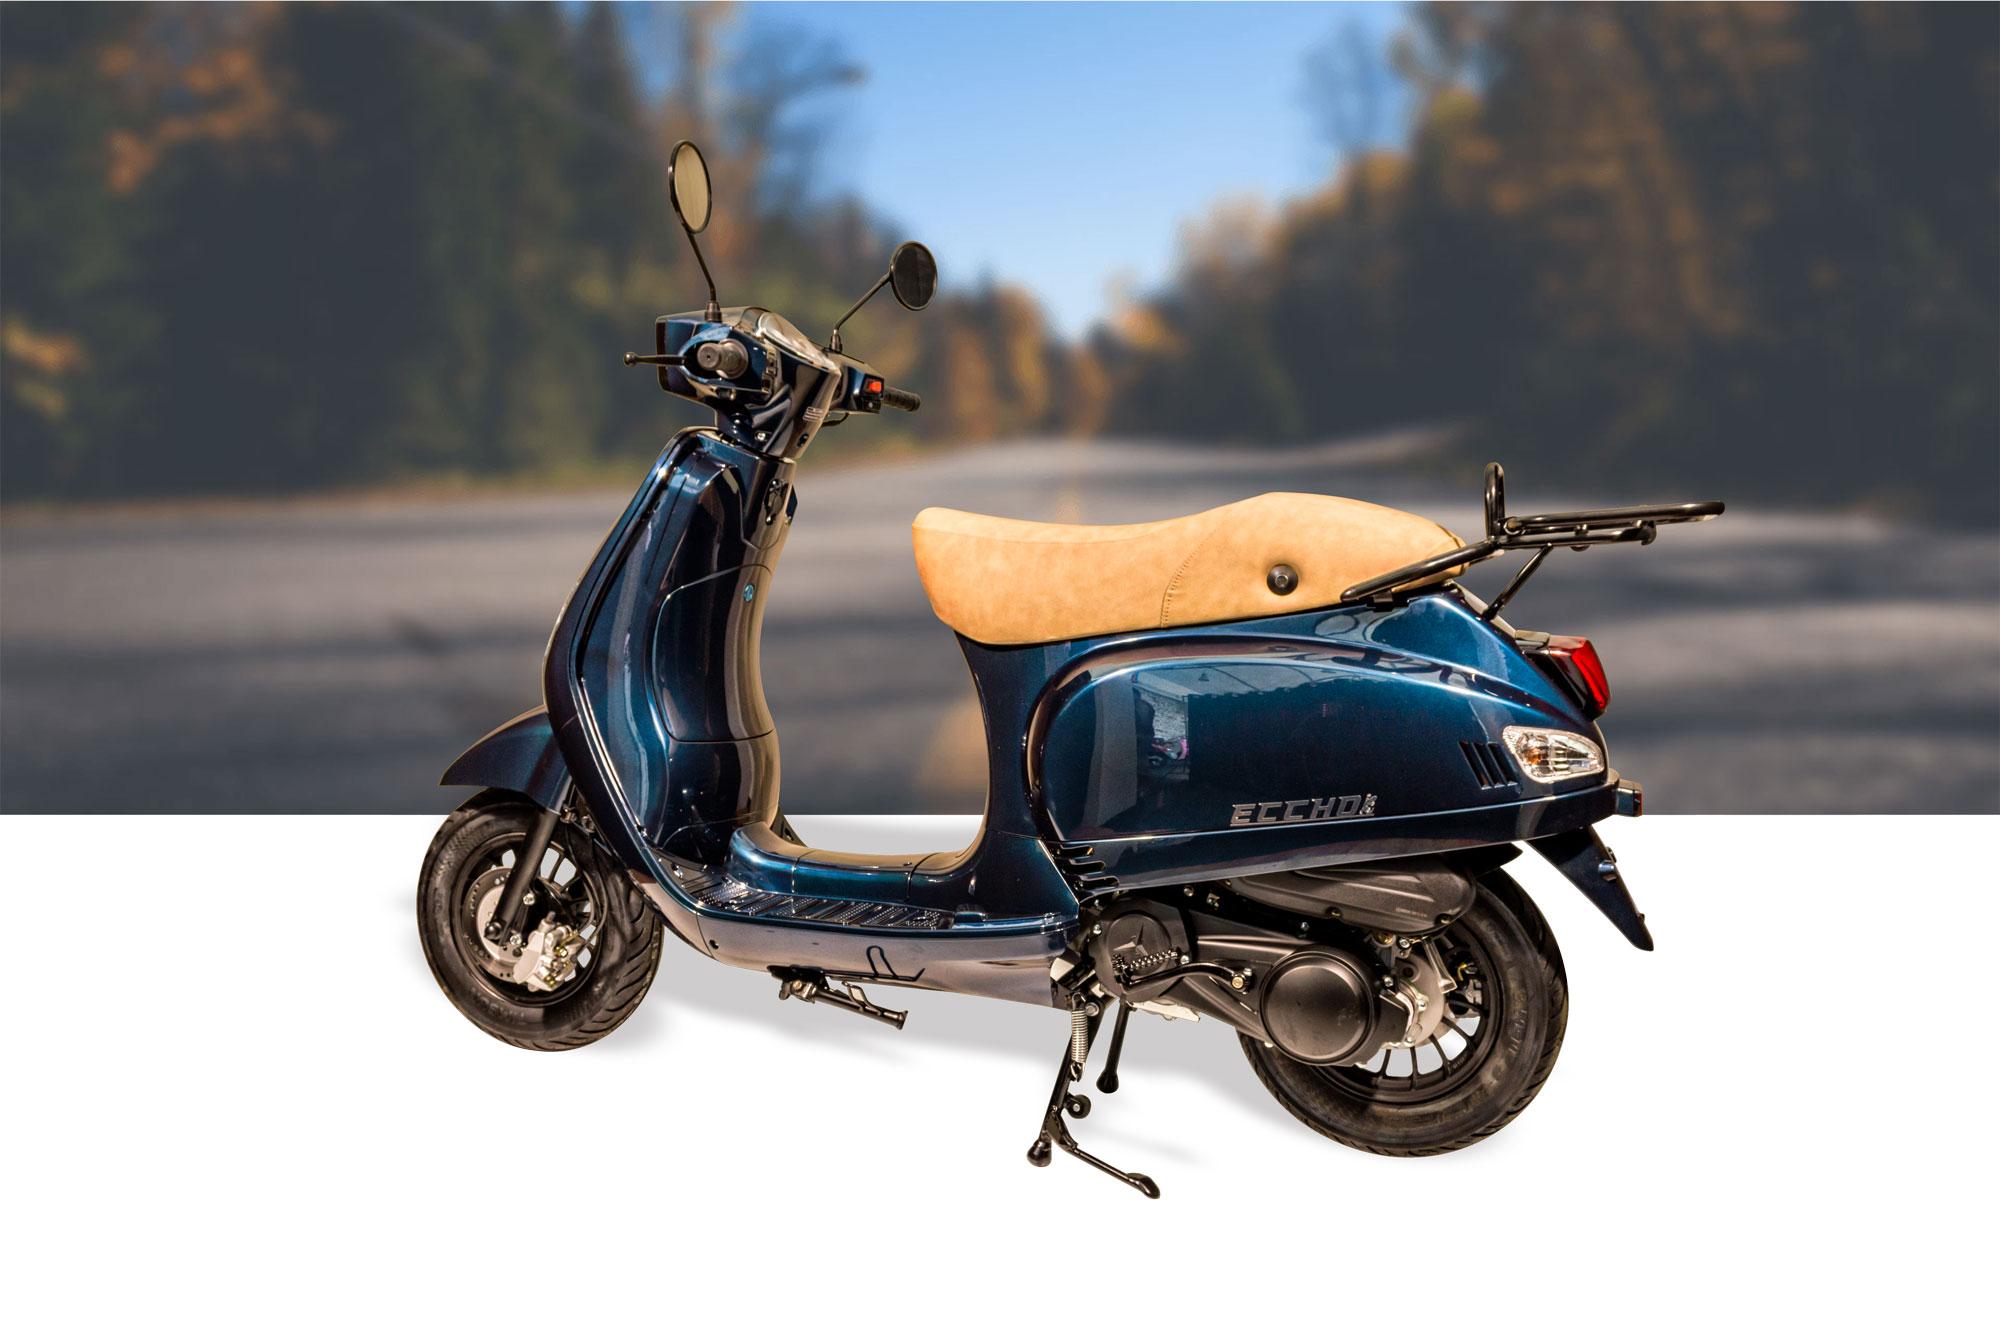 SCOOTER-125-ECCHO-VPX-SL-07